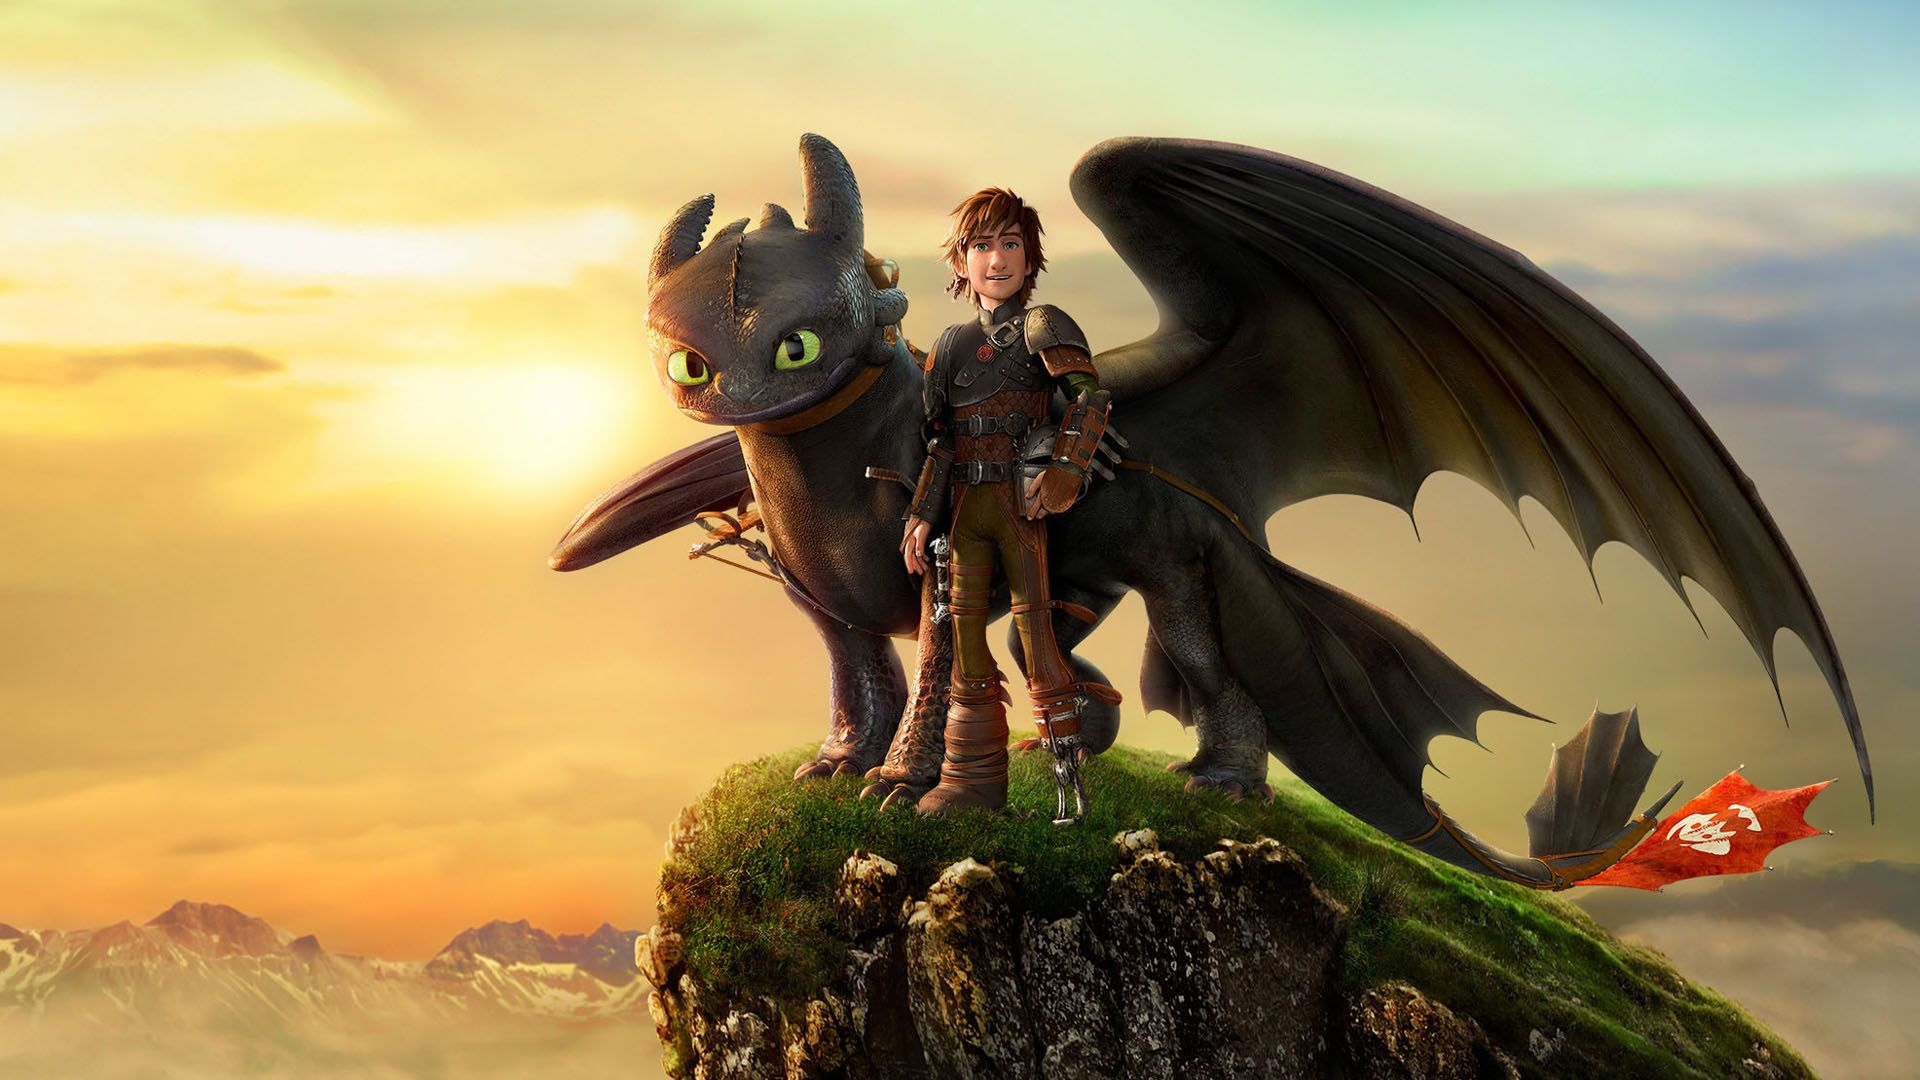 How To Train Your Dragon 2 Wallpaper New Jpg 1920 1080 Dragoes